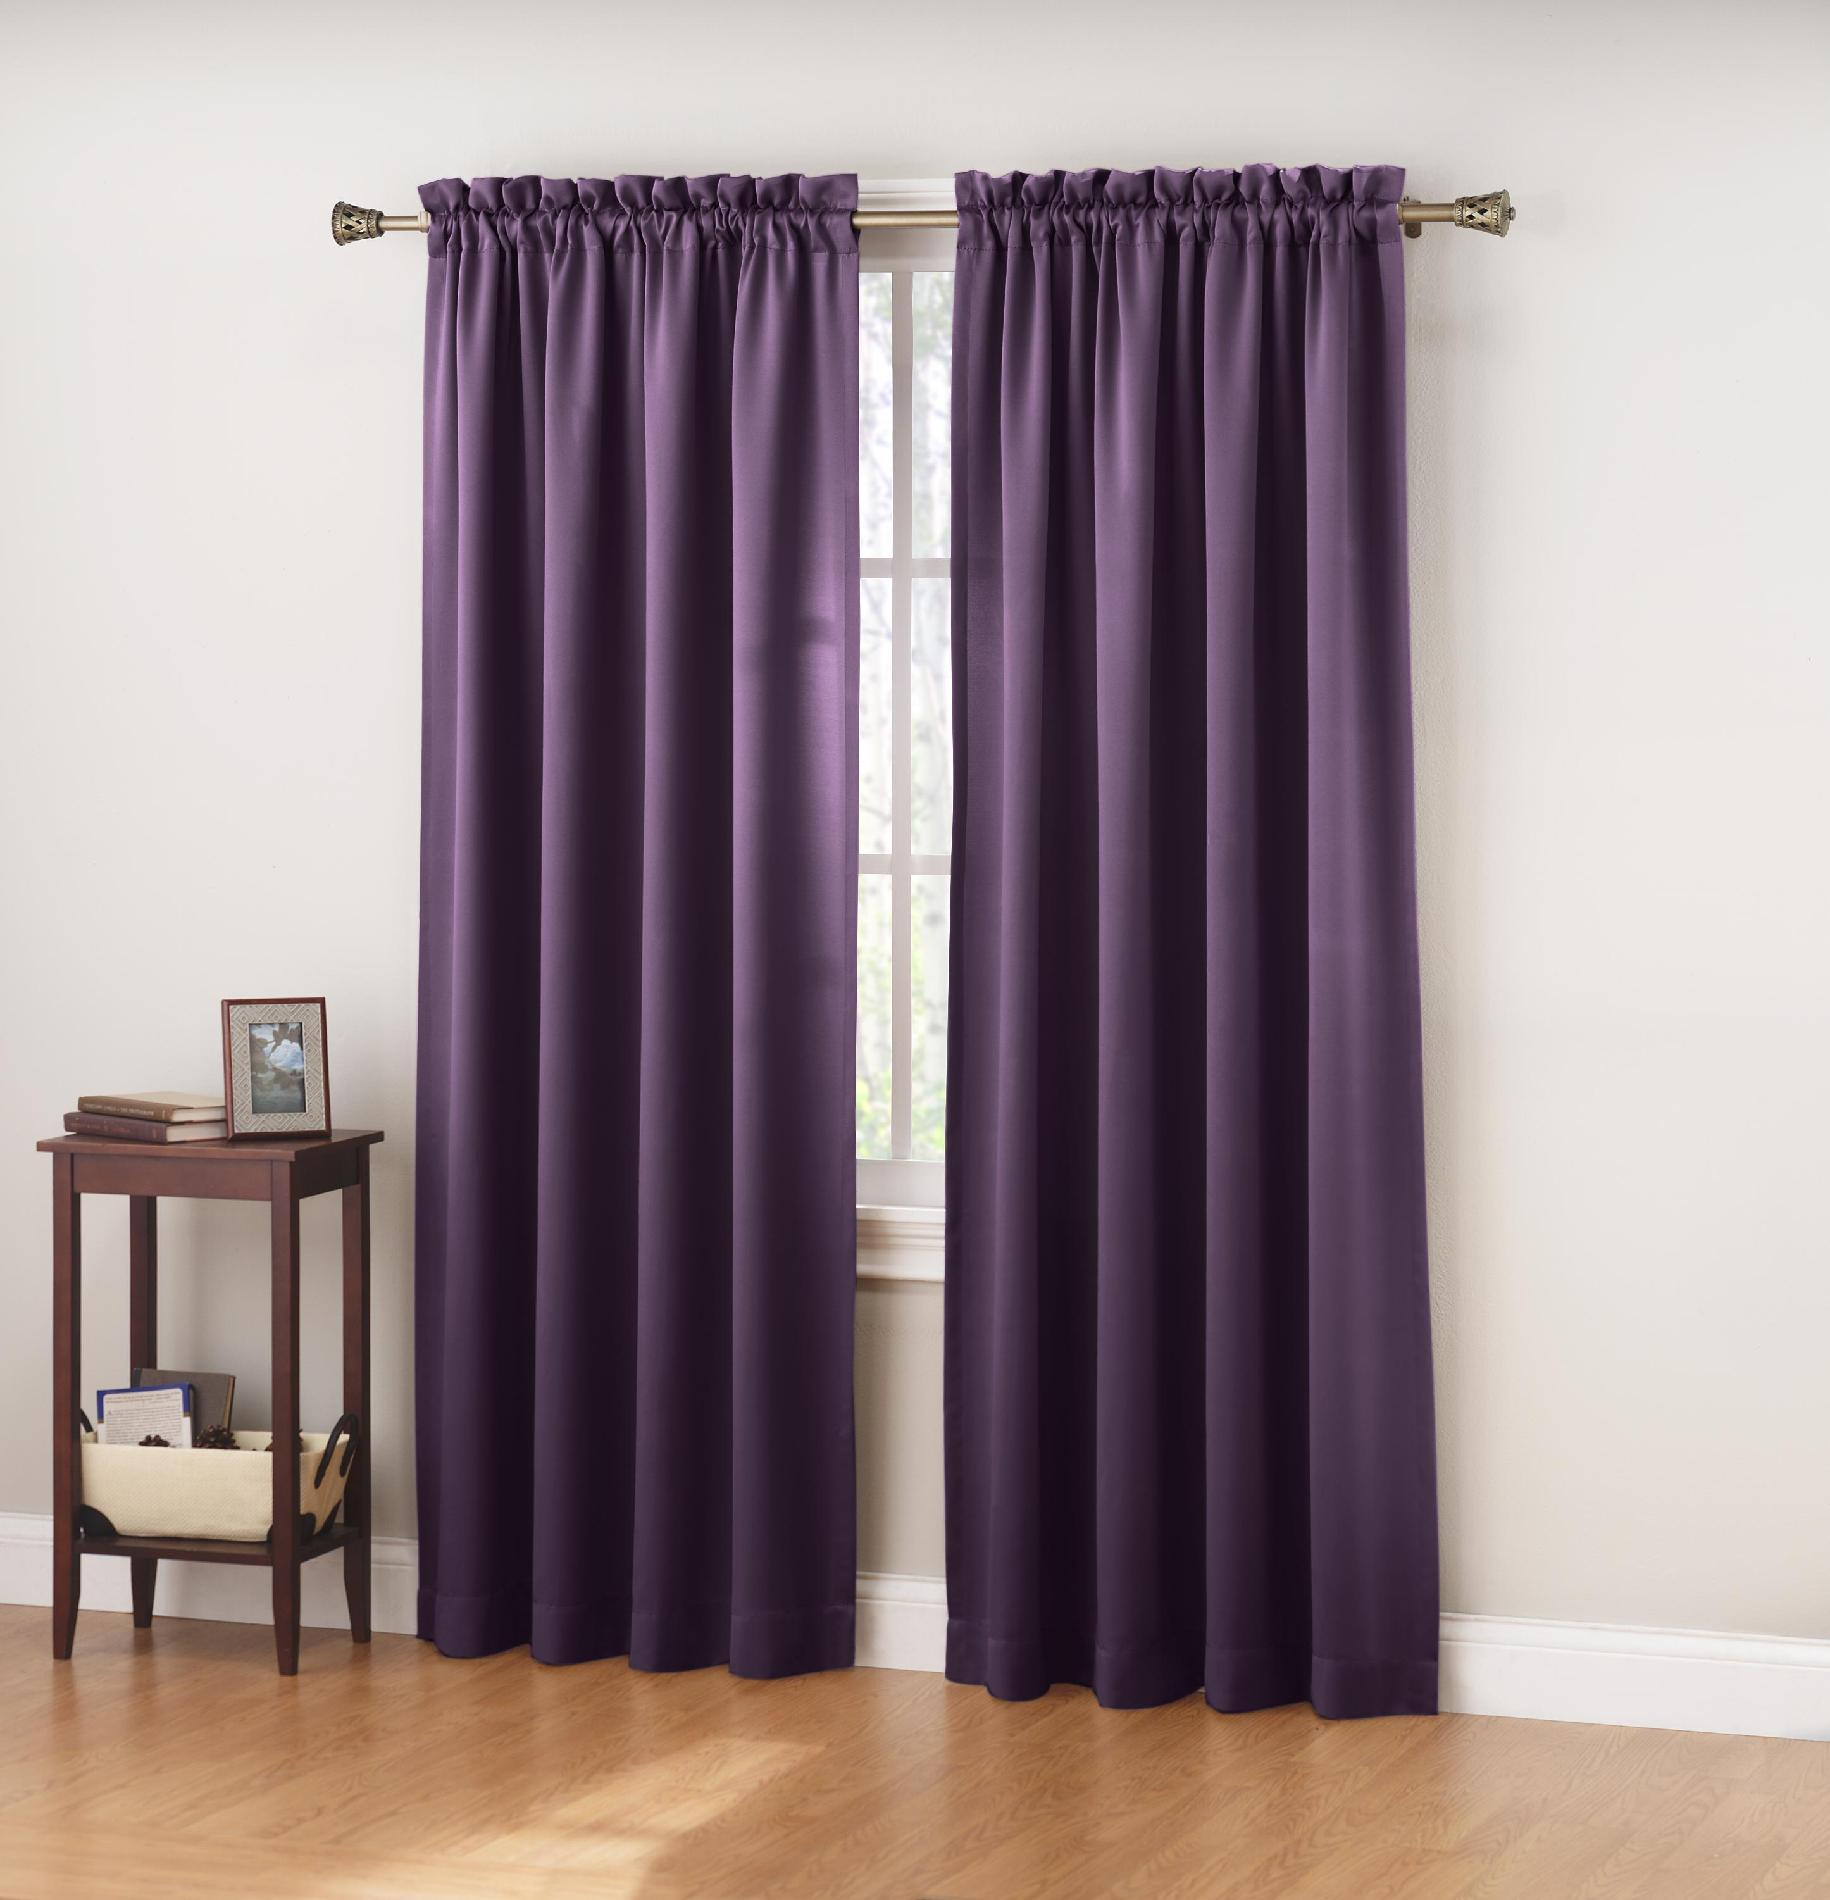 36 Inch Room Darkening Curtains Colormate Jillian Room Darkening Window Curtain Panel